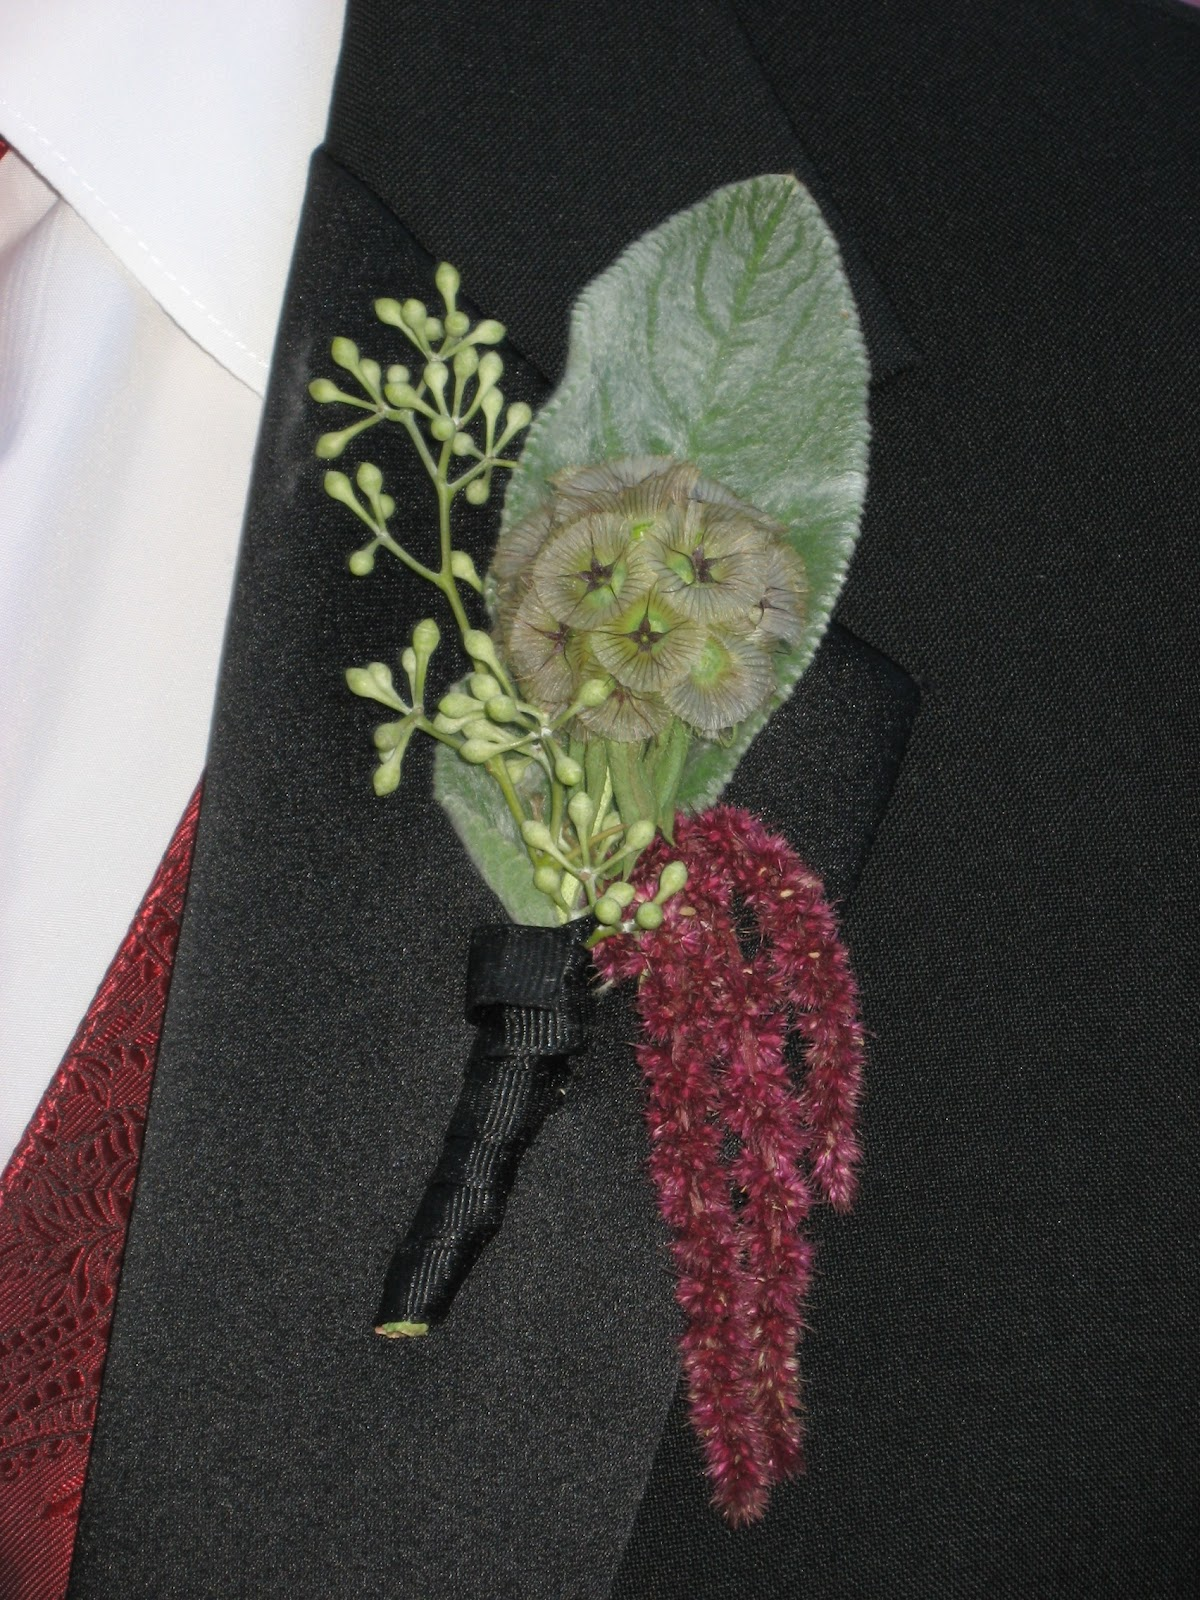 Scabiosa Pod and Hanging Amaranthus Boutonniere - Boutonnieres - Wedding Flowers - Groom - Usher - Best Man - Groomsmen - Ushers - Groom's Boutonniere